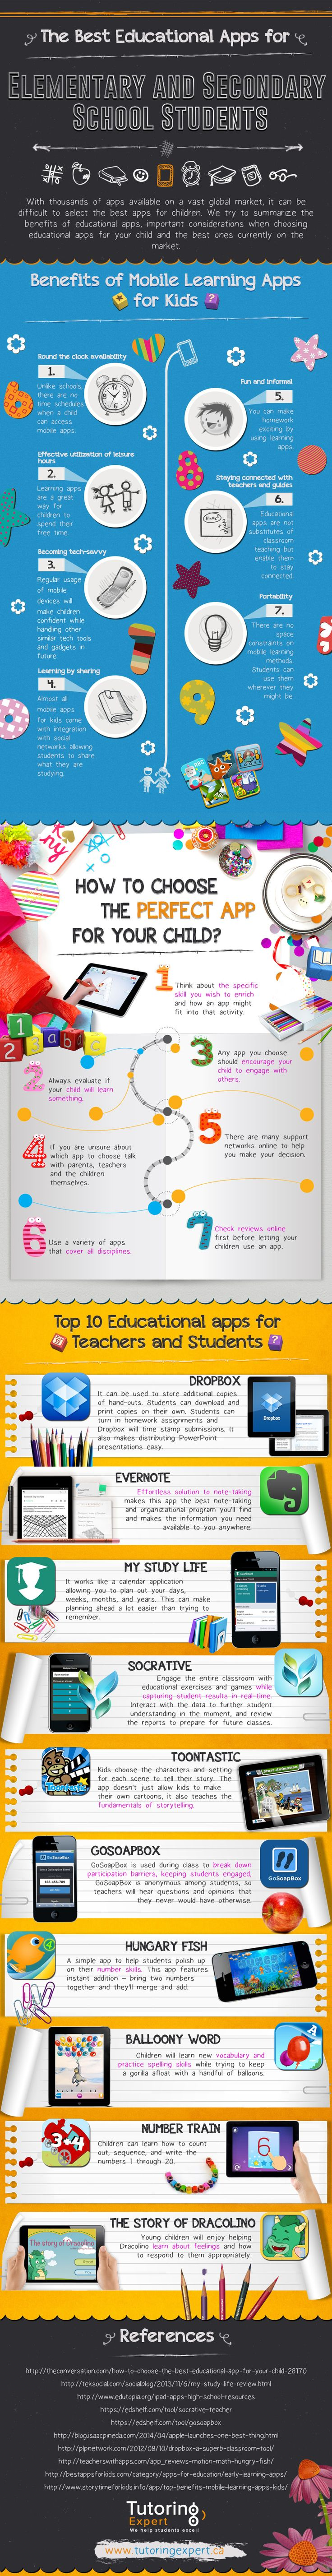 The Best Apps for Elementary & Secondary School Students Infographic - http://elearninginfographics.com/best-apps-elementary-secondary-school-students-infographic/